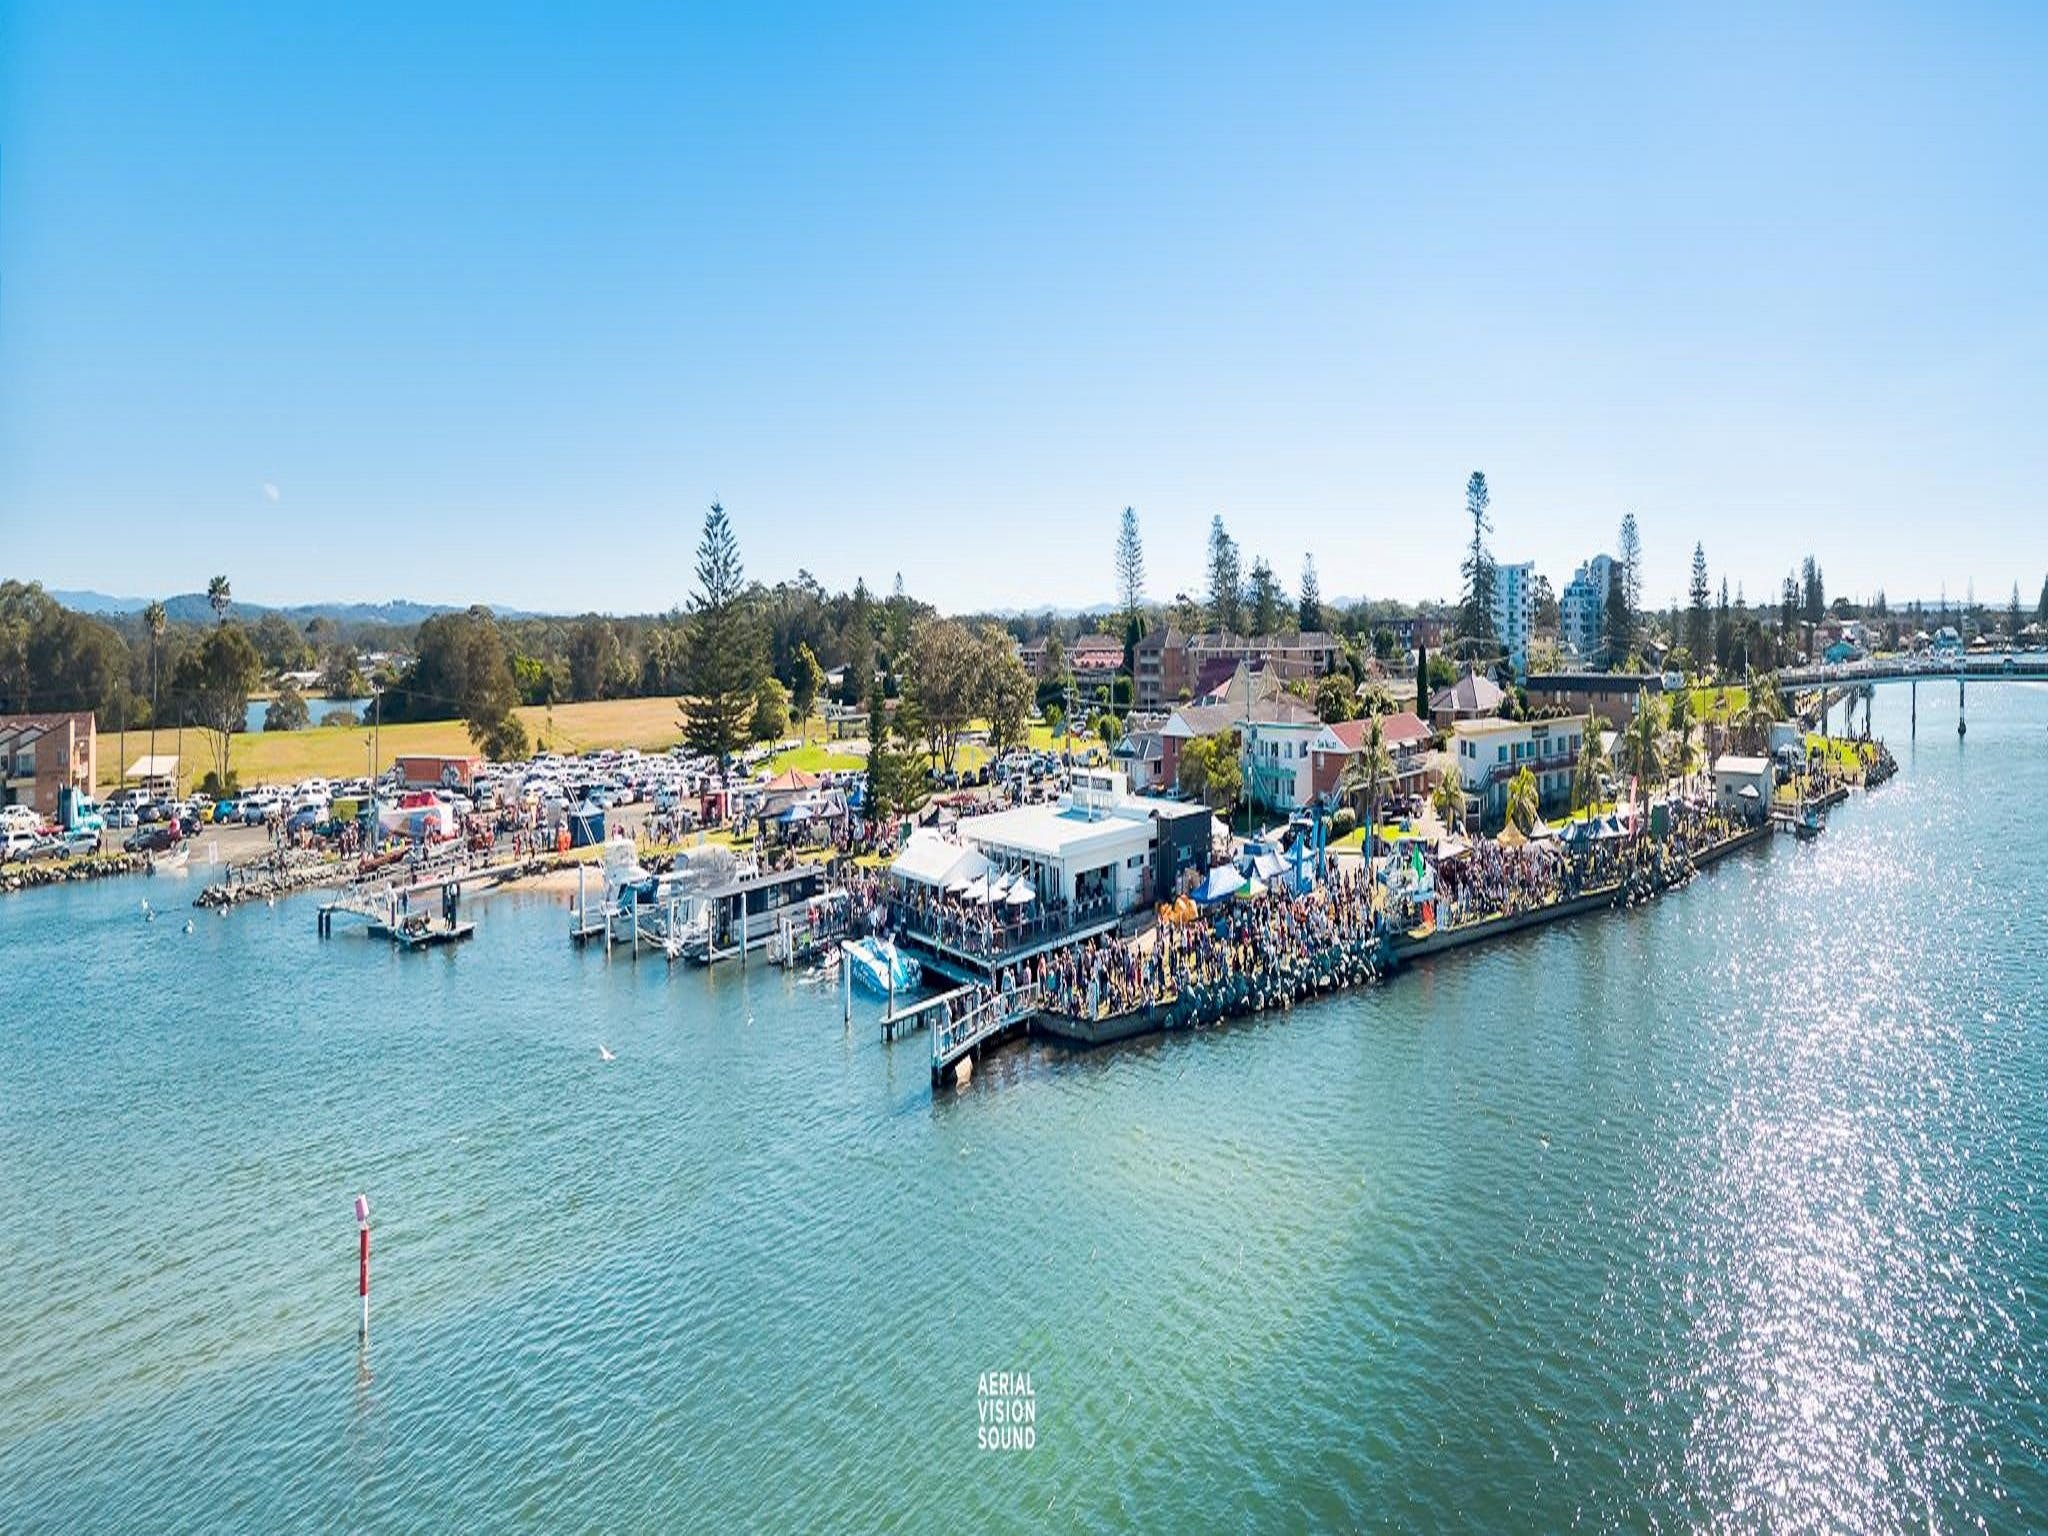 Fred Williams Aquatic Festival - Bundaberg Accommodation